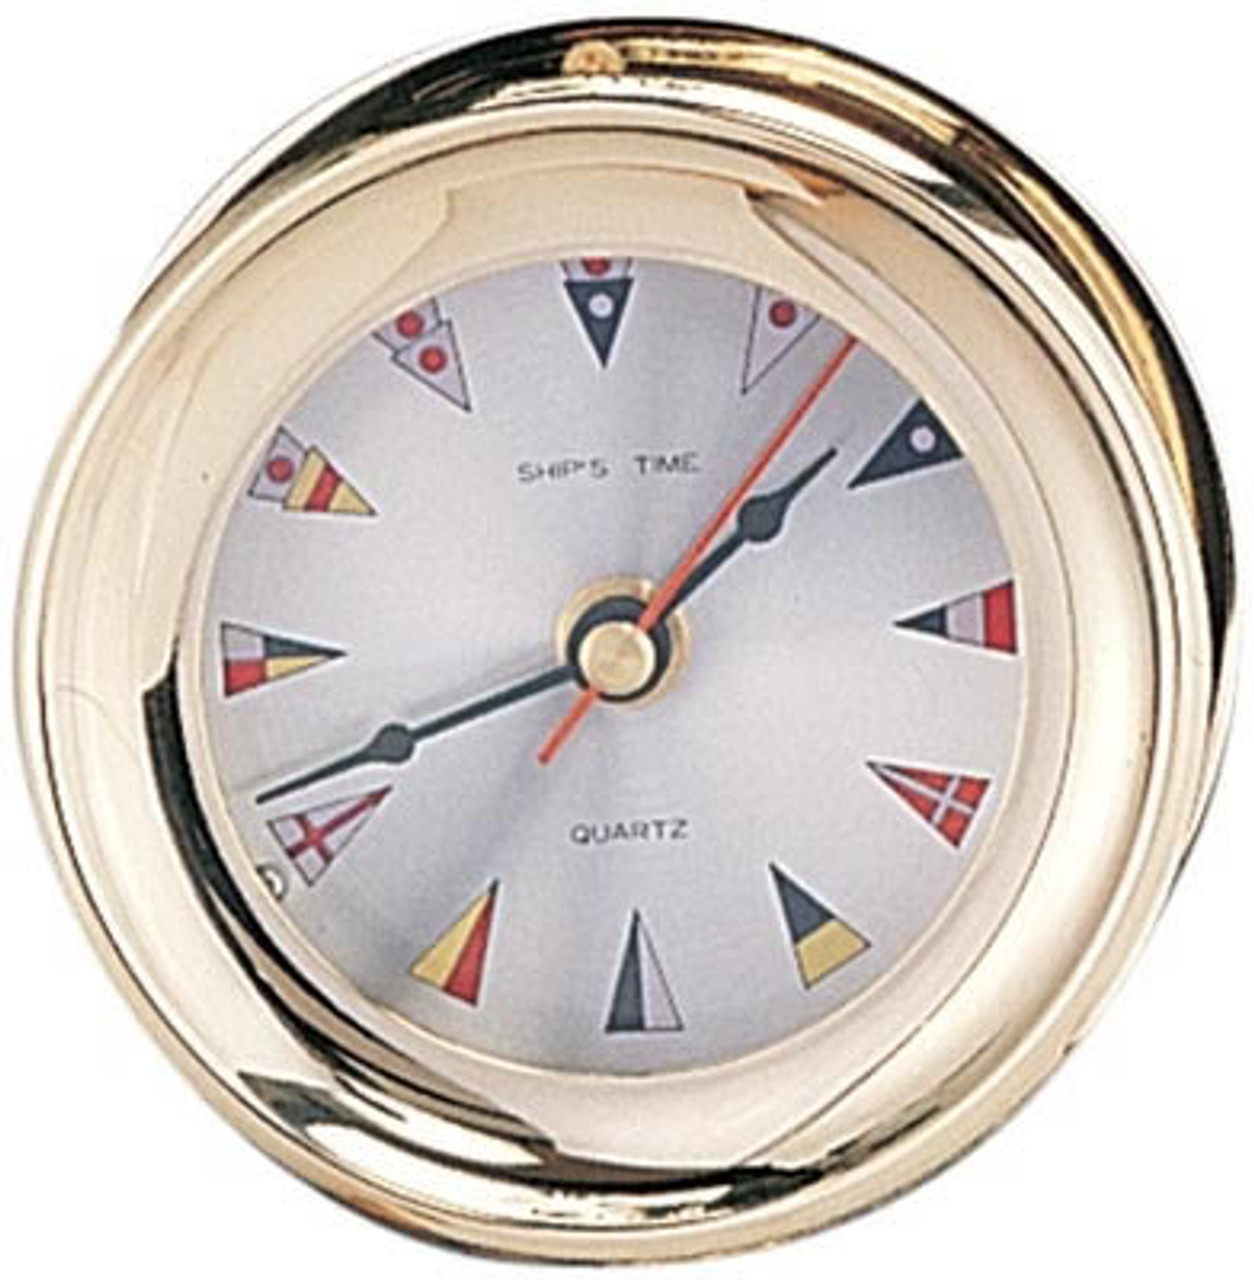 "(TK-225F 4.5"") 4.5"" Captain Clock with Flag Face"